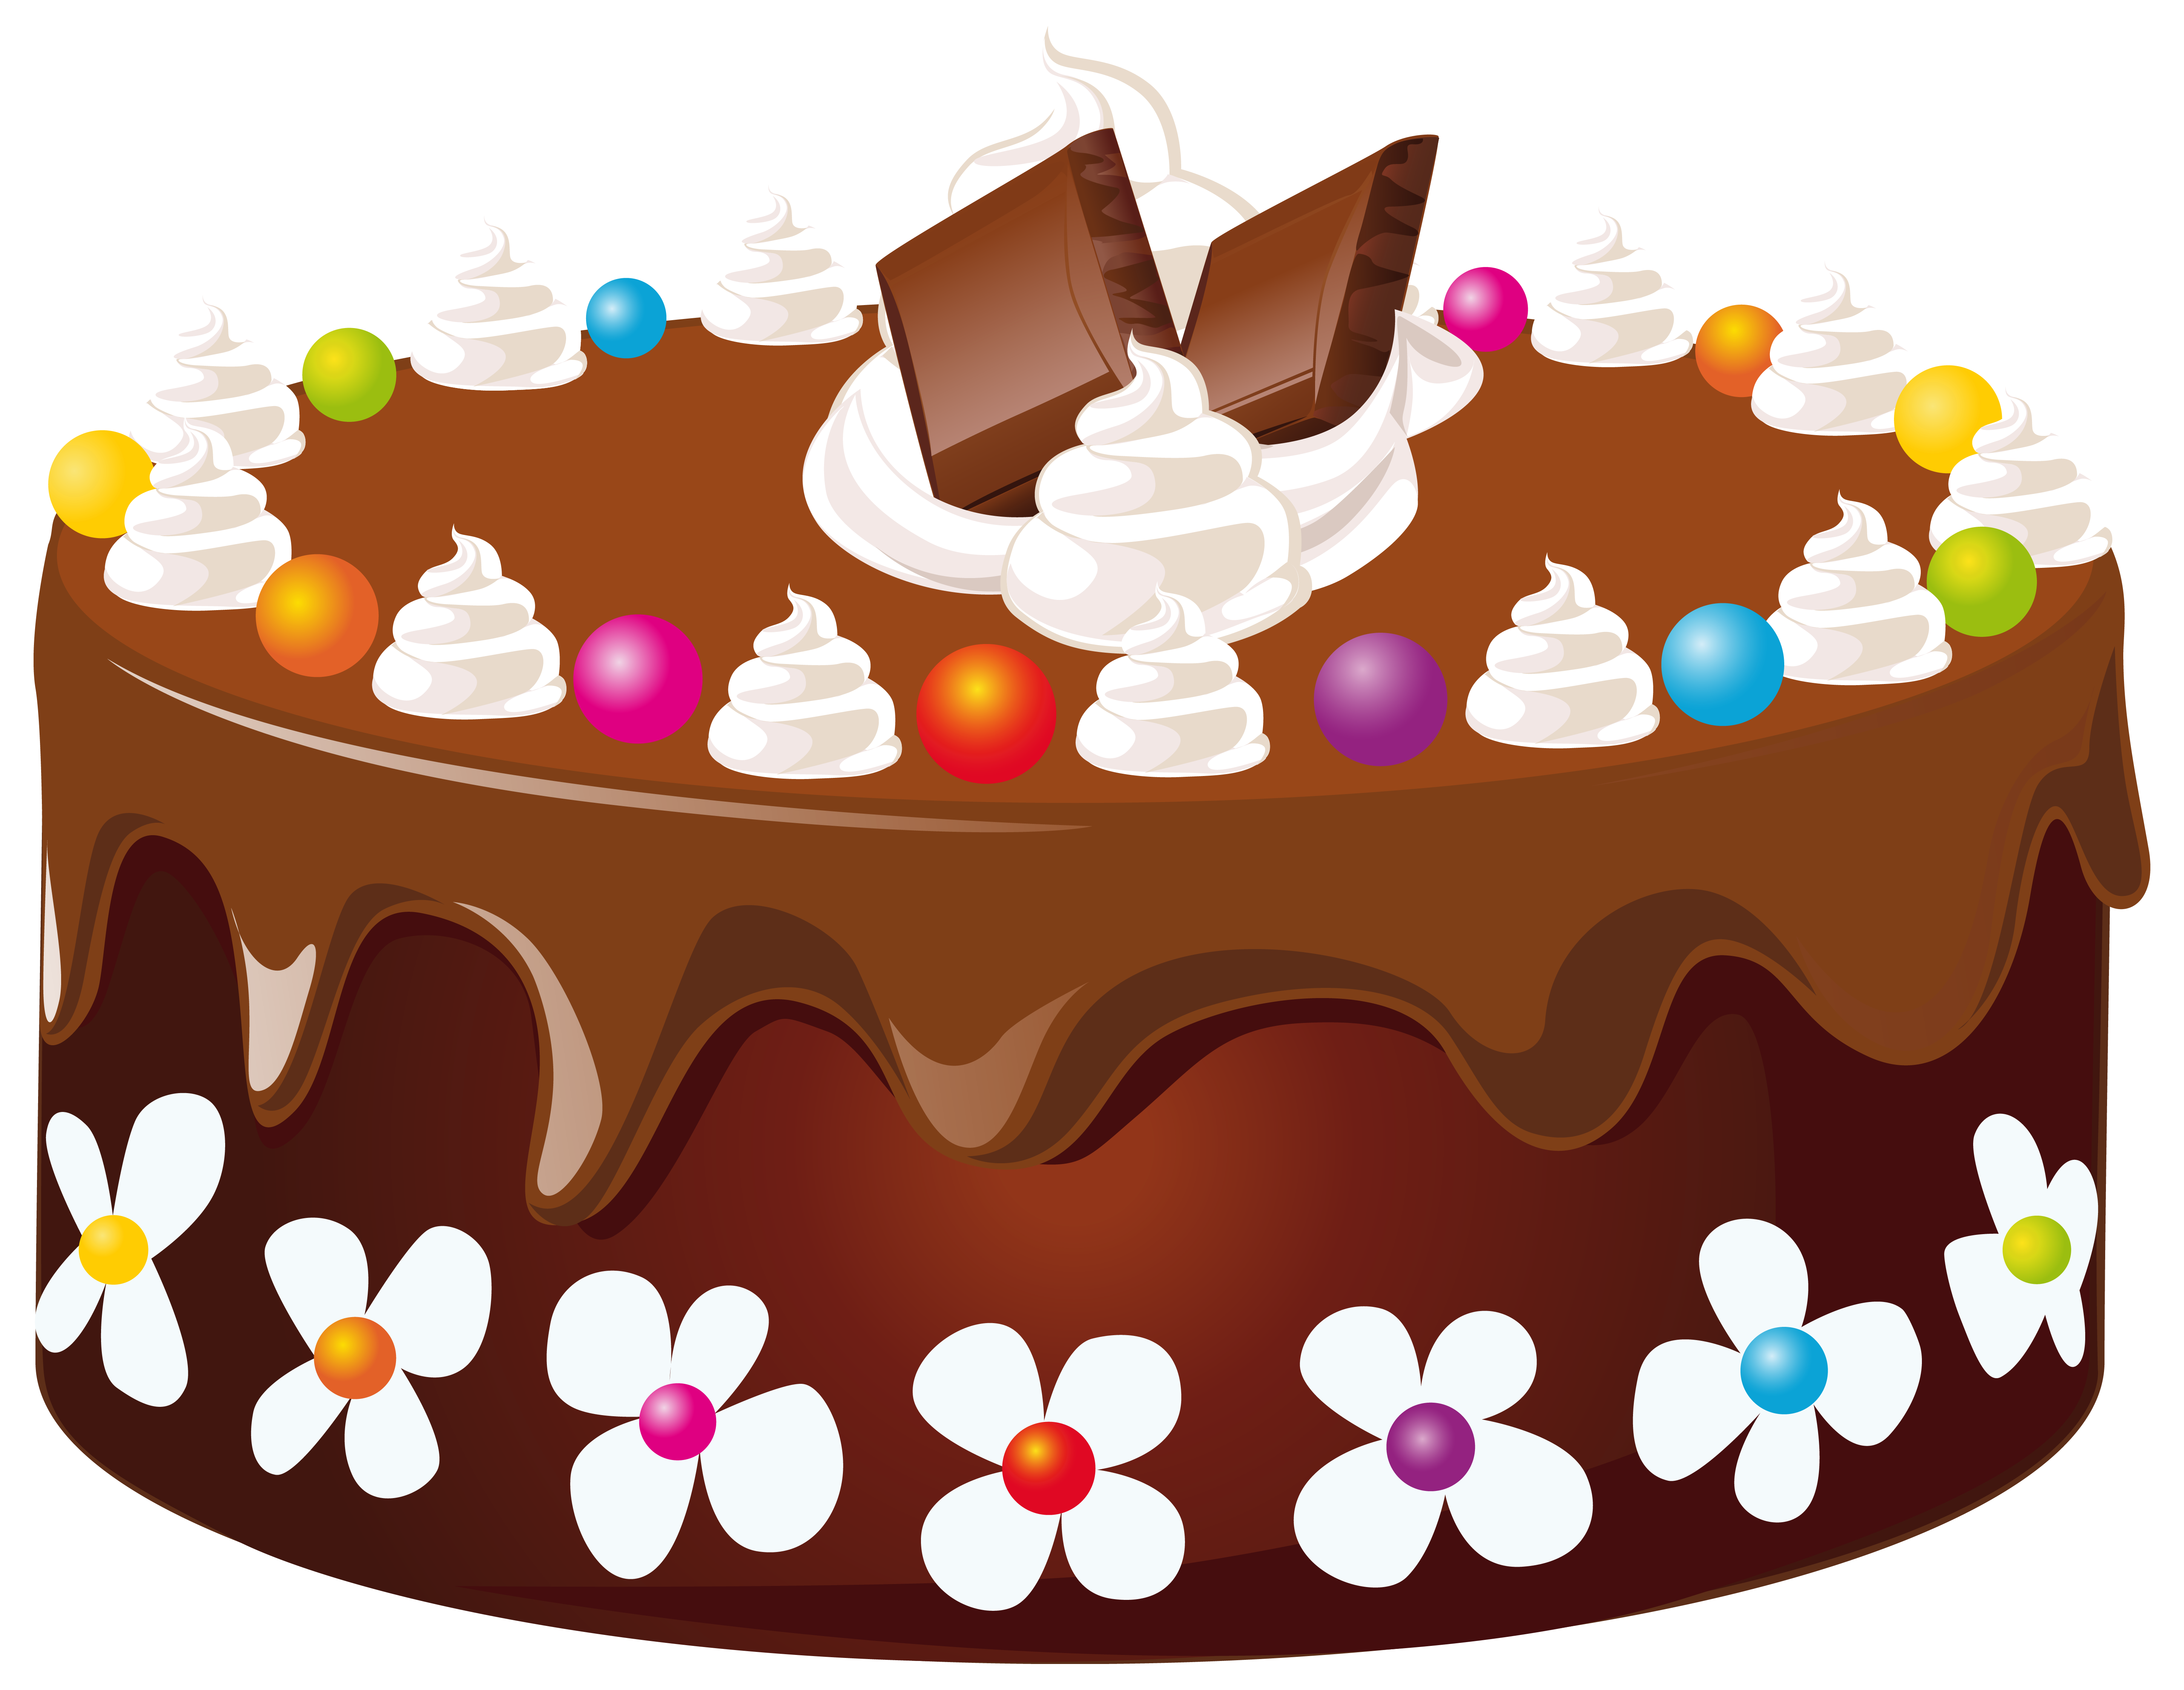 Chocolate png image gallery. Cake clipart cake design image black and white